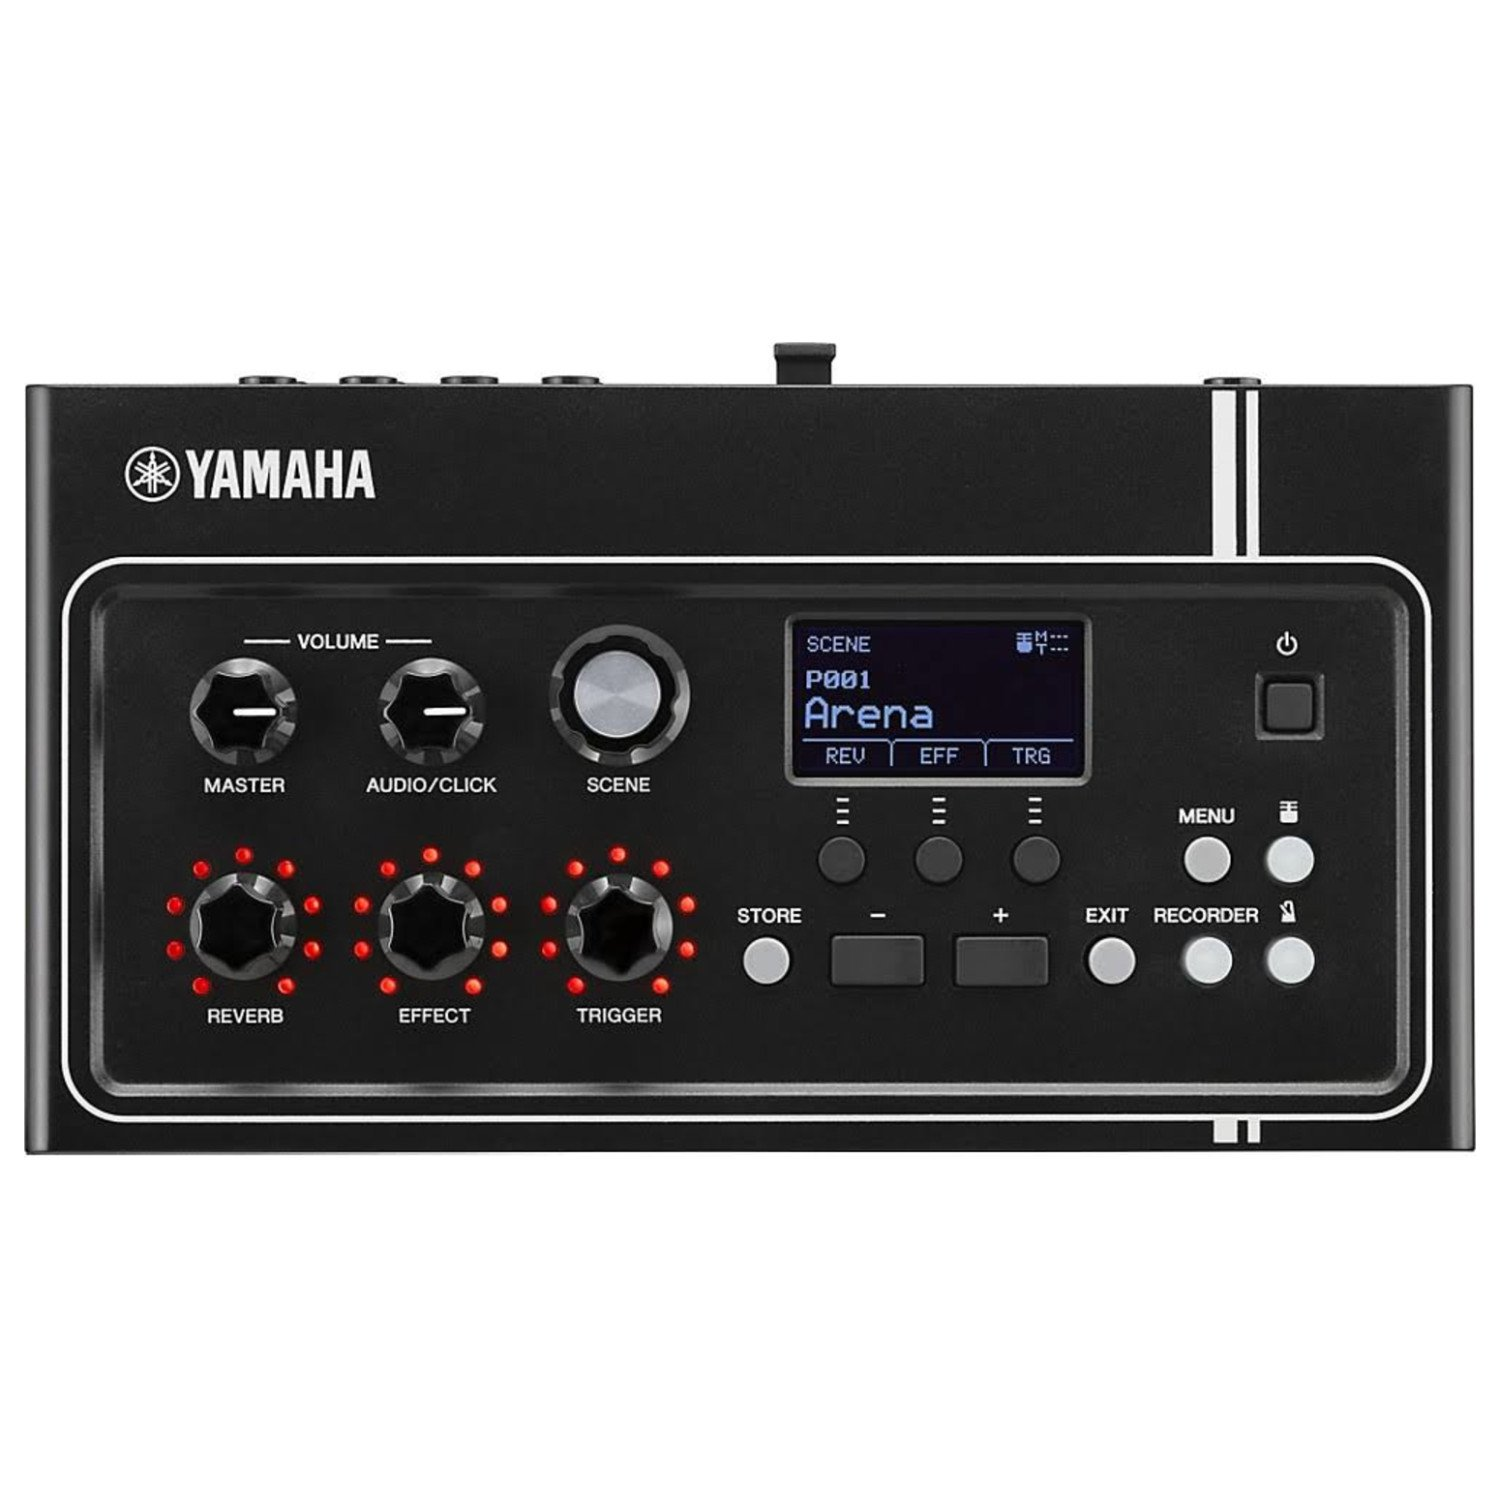 Yamaha EAD10 Electronic Acoustic Drum Module (Included Mic with Trigger Pickup & Power Supply) Bundle with Zorro Sounds Drum Polish Cloth, 2 x Instrument Cables & Headphones Best Drum Module Bundle by Yamaha (Image #4)